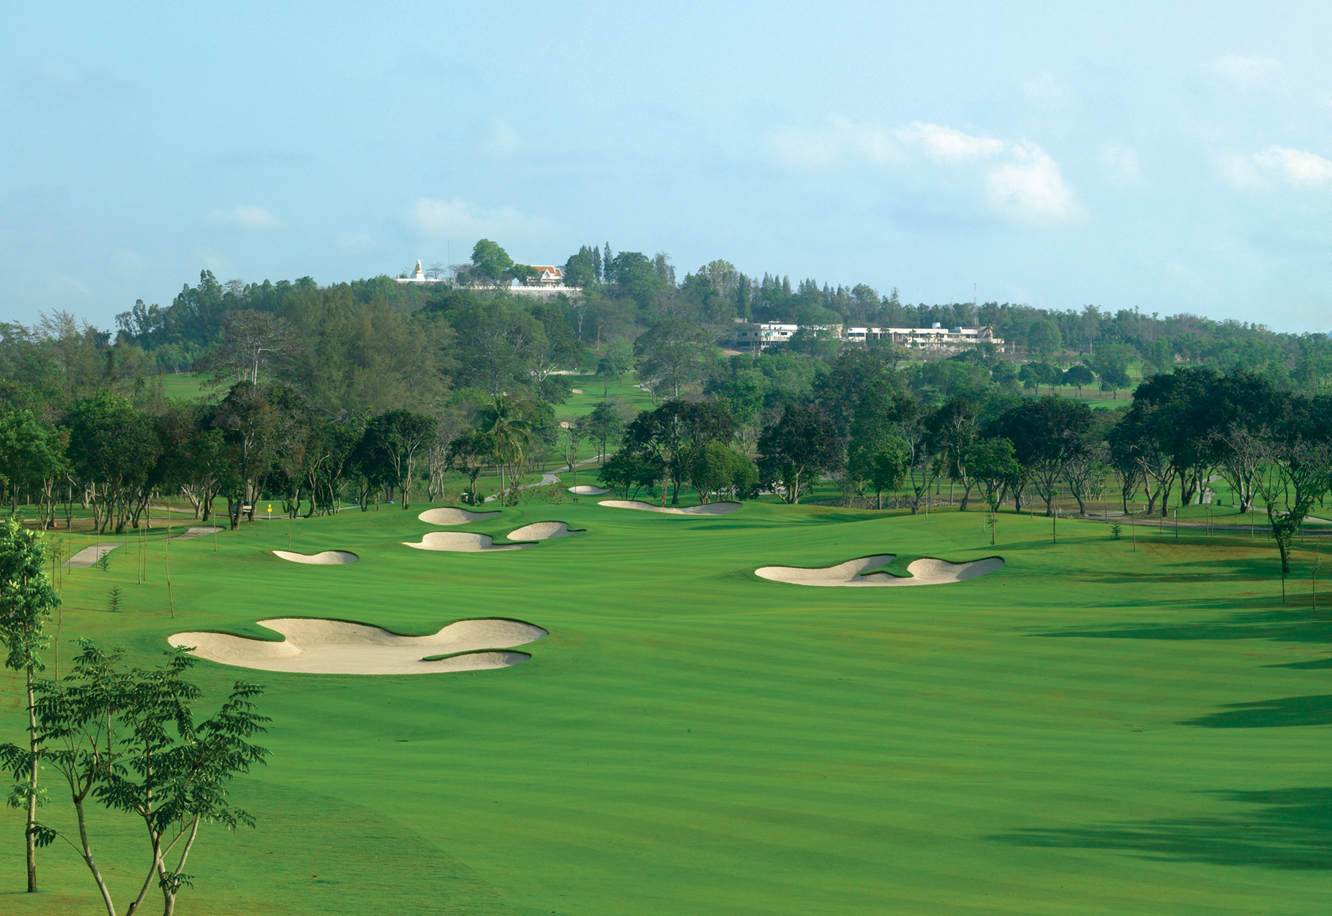 No. 5 at Siam Country Club.